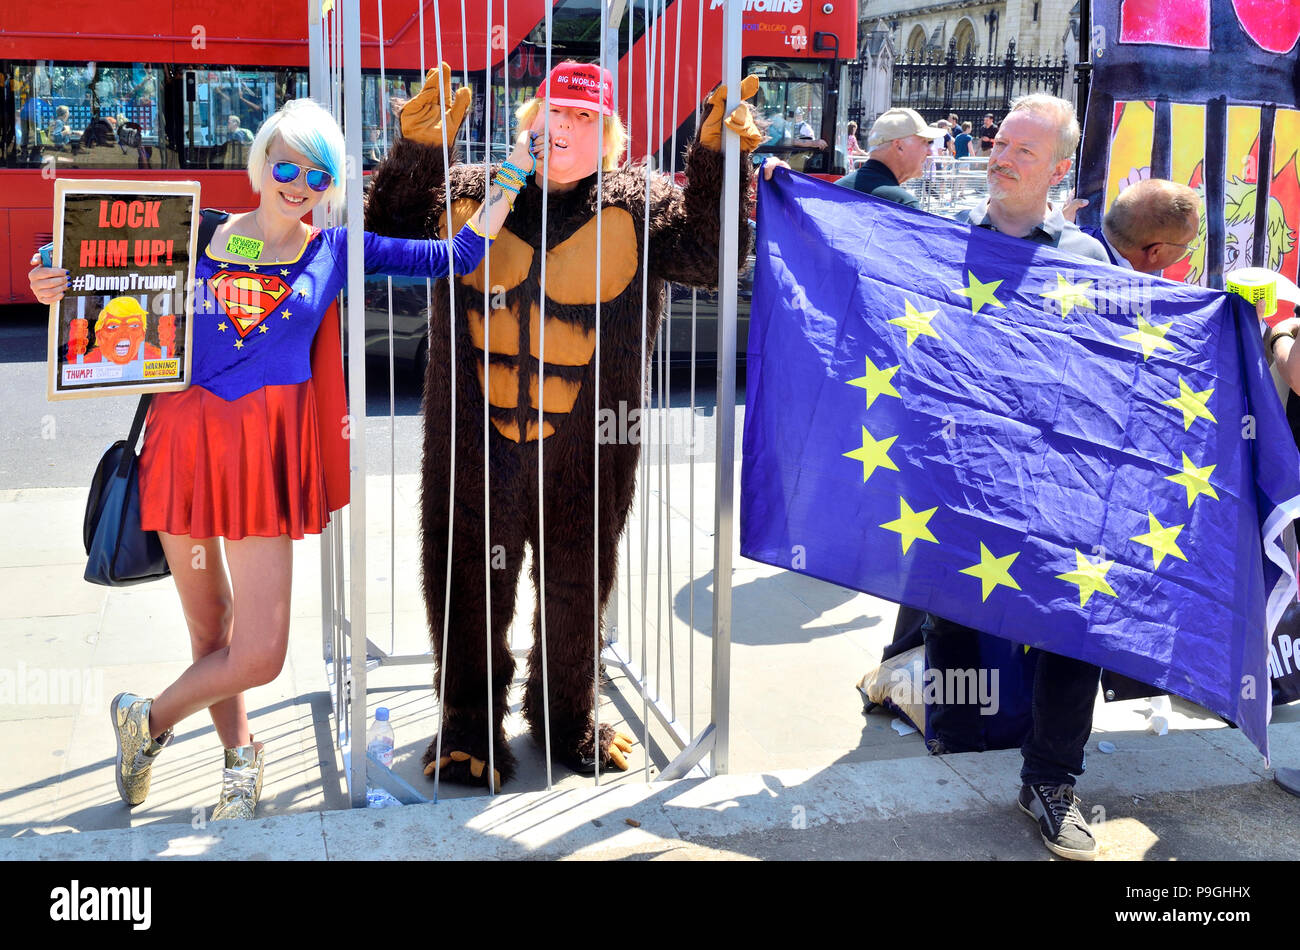 Madeleina Kay - EU Supergirl and Young European of the Year 2018 - with Donald Trump in a cage at the anti-Trump vist protest, Parliament Square, 13th - Stock Image